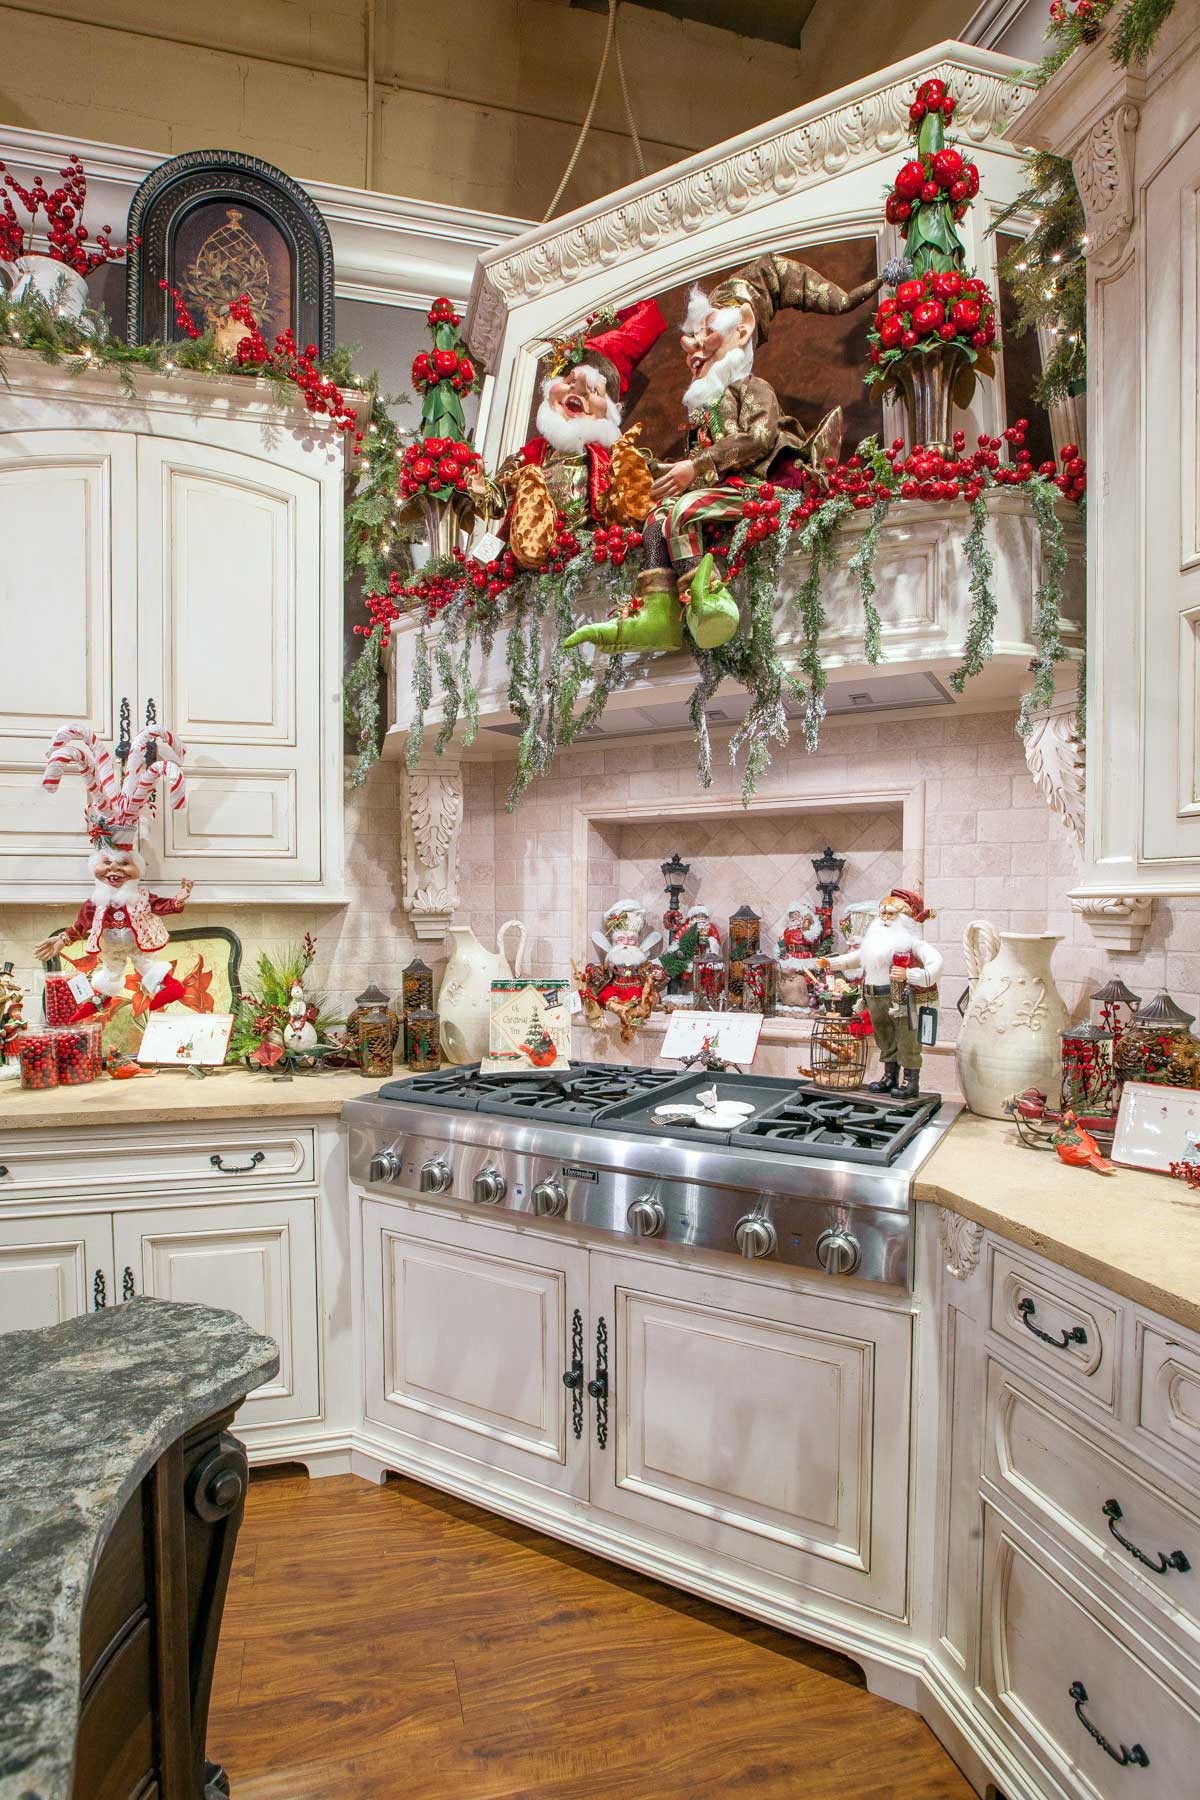 Kitchen Cabinet Christmas Decorating Ideas  Christmas Home Decor LINLY DESIGNS